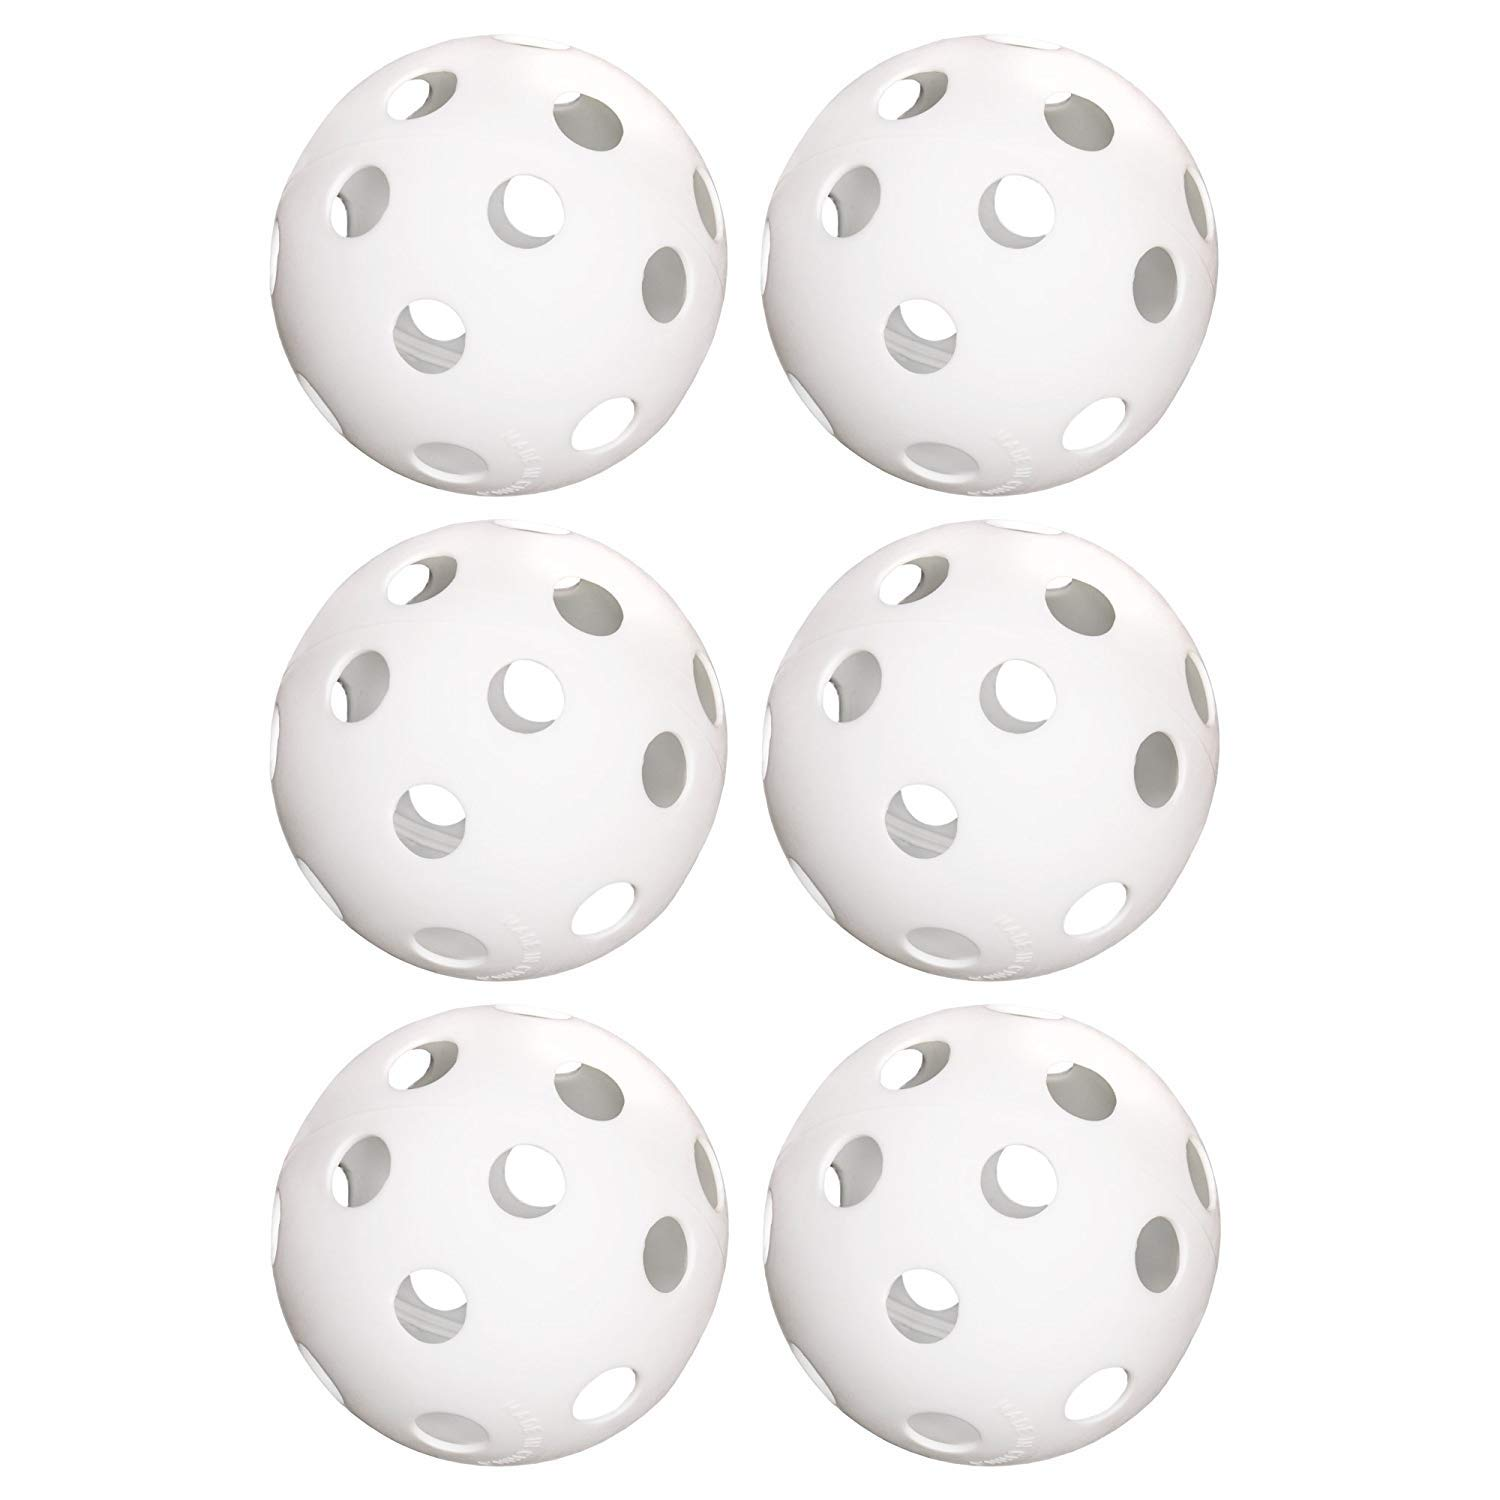 JVSISM 6-Pack Of 9-Inch Softballs–Perforated Practice Balls For Sports Training & Wiffle Ball